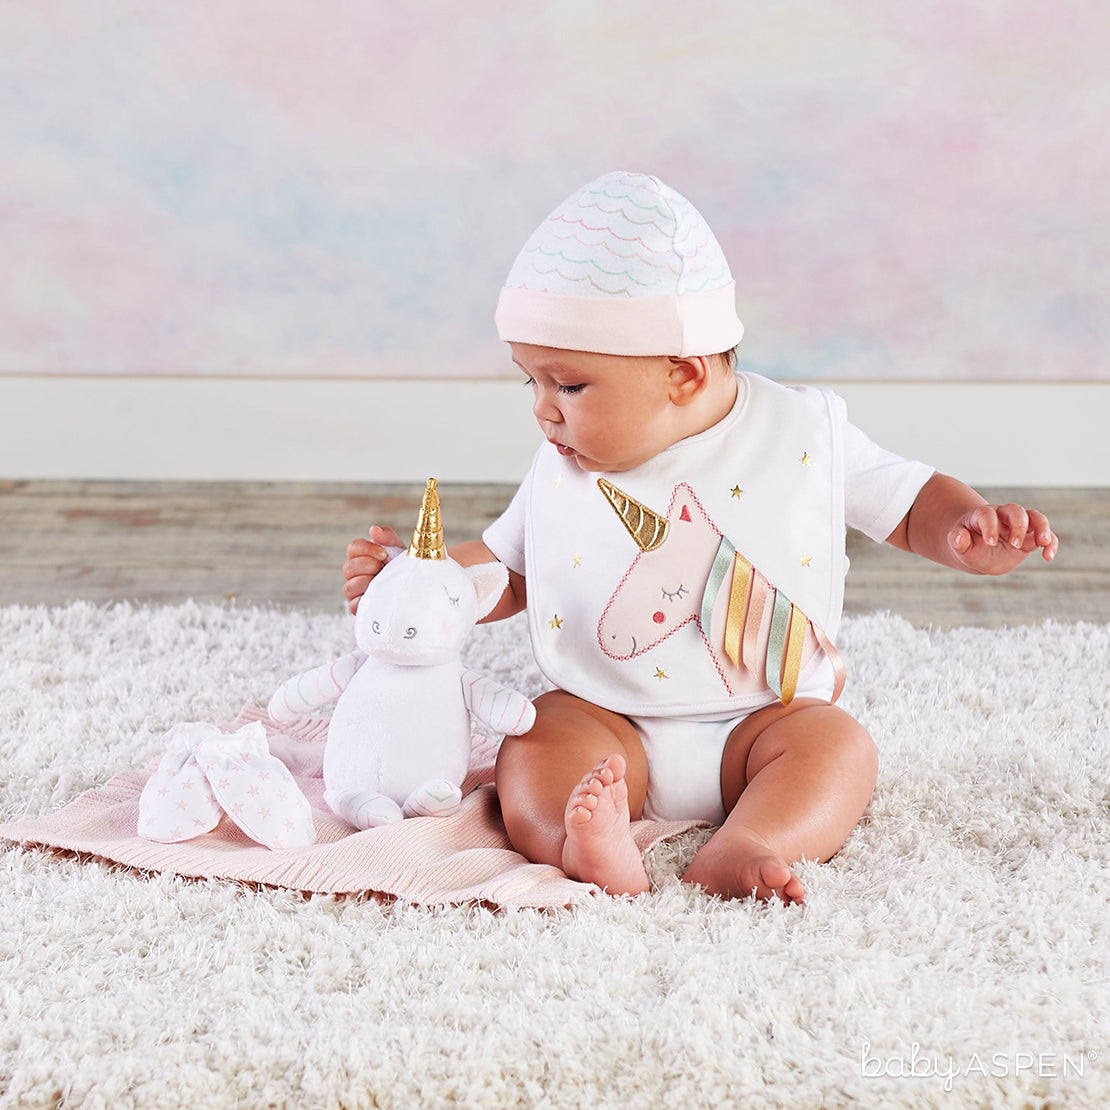 Simply Enchanted Unicorn 5-Piece Welcome Home Gift Set | Magical Unicorn Themed Baby Gifts | Baby Aspen